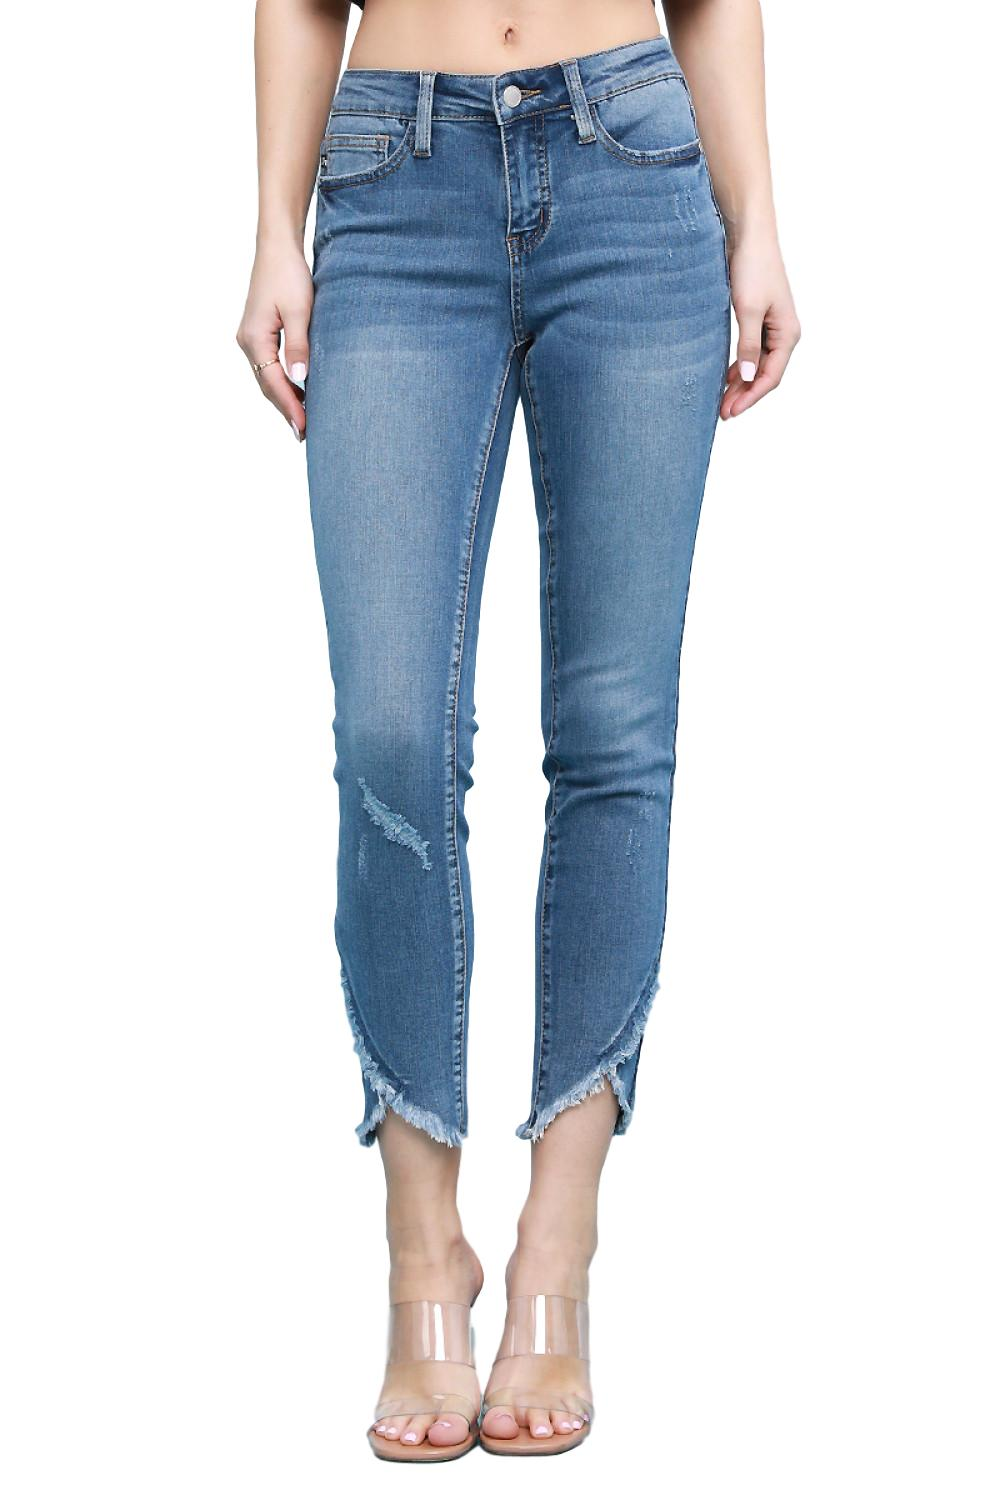 "Judy Blue Collection: Spring 2020 Style Name: Tulip Color: Medium Wash Cut: Ankle Skinny, 27"" Inseam Rise: Mid Rise, 8.75"" Material: 75% COTTON / 23% POLYESTER / 2% SPANDEX Machine Wash Separately In Cold Water Stitching: Classic Fly: Zipper Style #: JB8839-M Contact us for any additional measurements or sizing.  Judy Blue Size Guide:   Compared to Juniors: 0/24 1/25 3/26 5/27 7/28 9/29 11/30 13/31 15/32  Compared to Womens: 24/00 25/0 26/2 27/4 28/6 29/8 30/10 31/12 32/14"